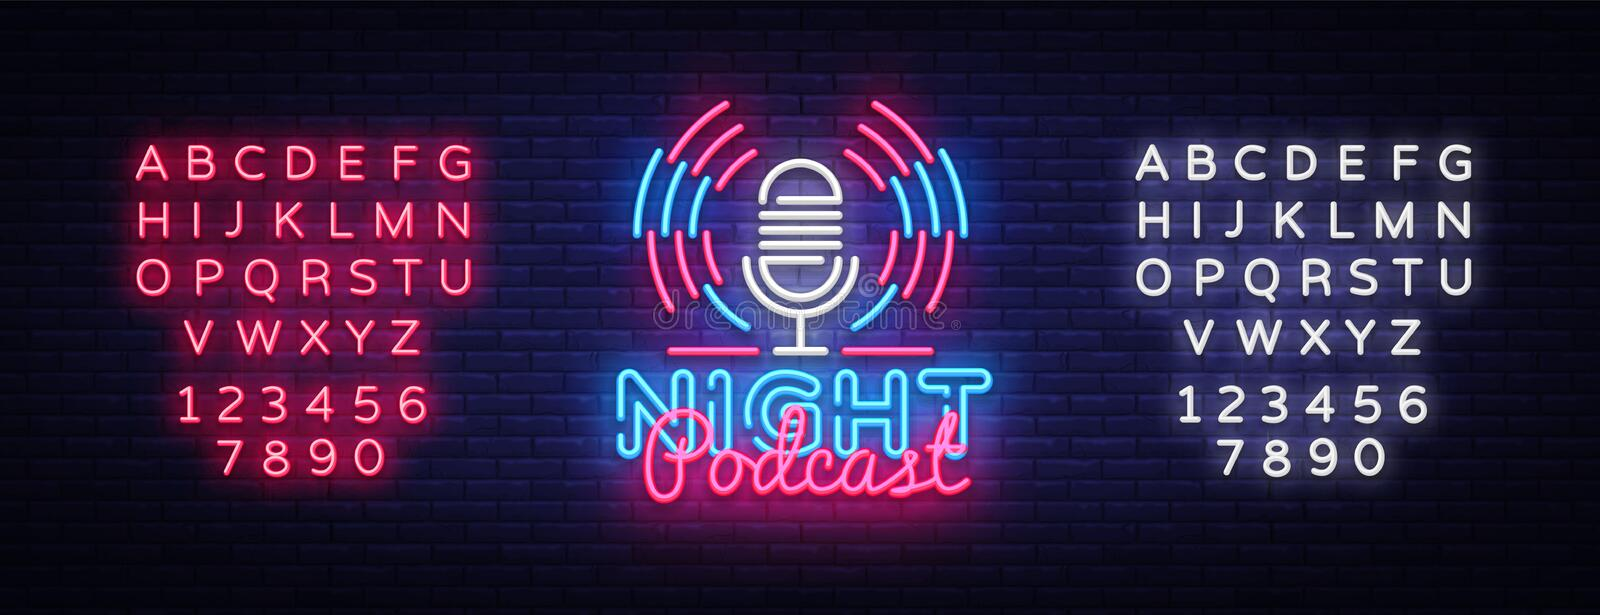 Podcast neon sign vector. Night Podcast Design template neon sign, light banner, neon signboard, nightly bright royalty free illustration